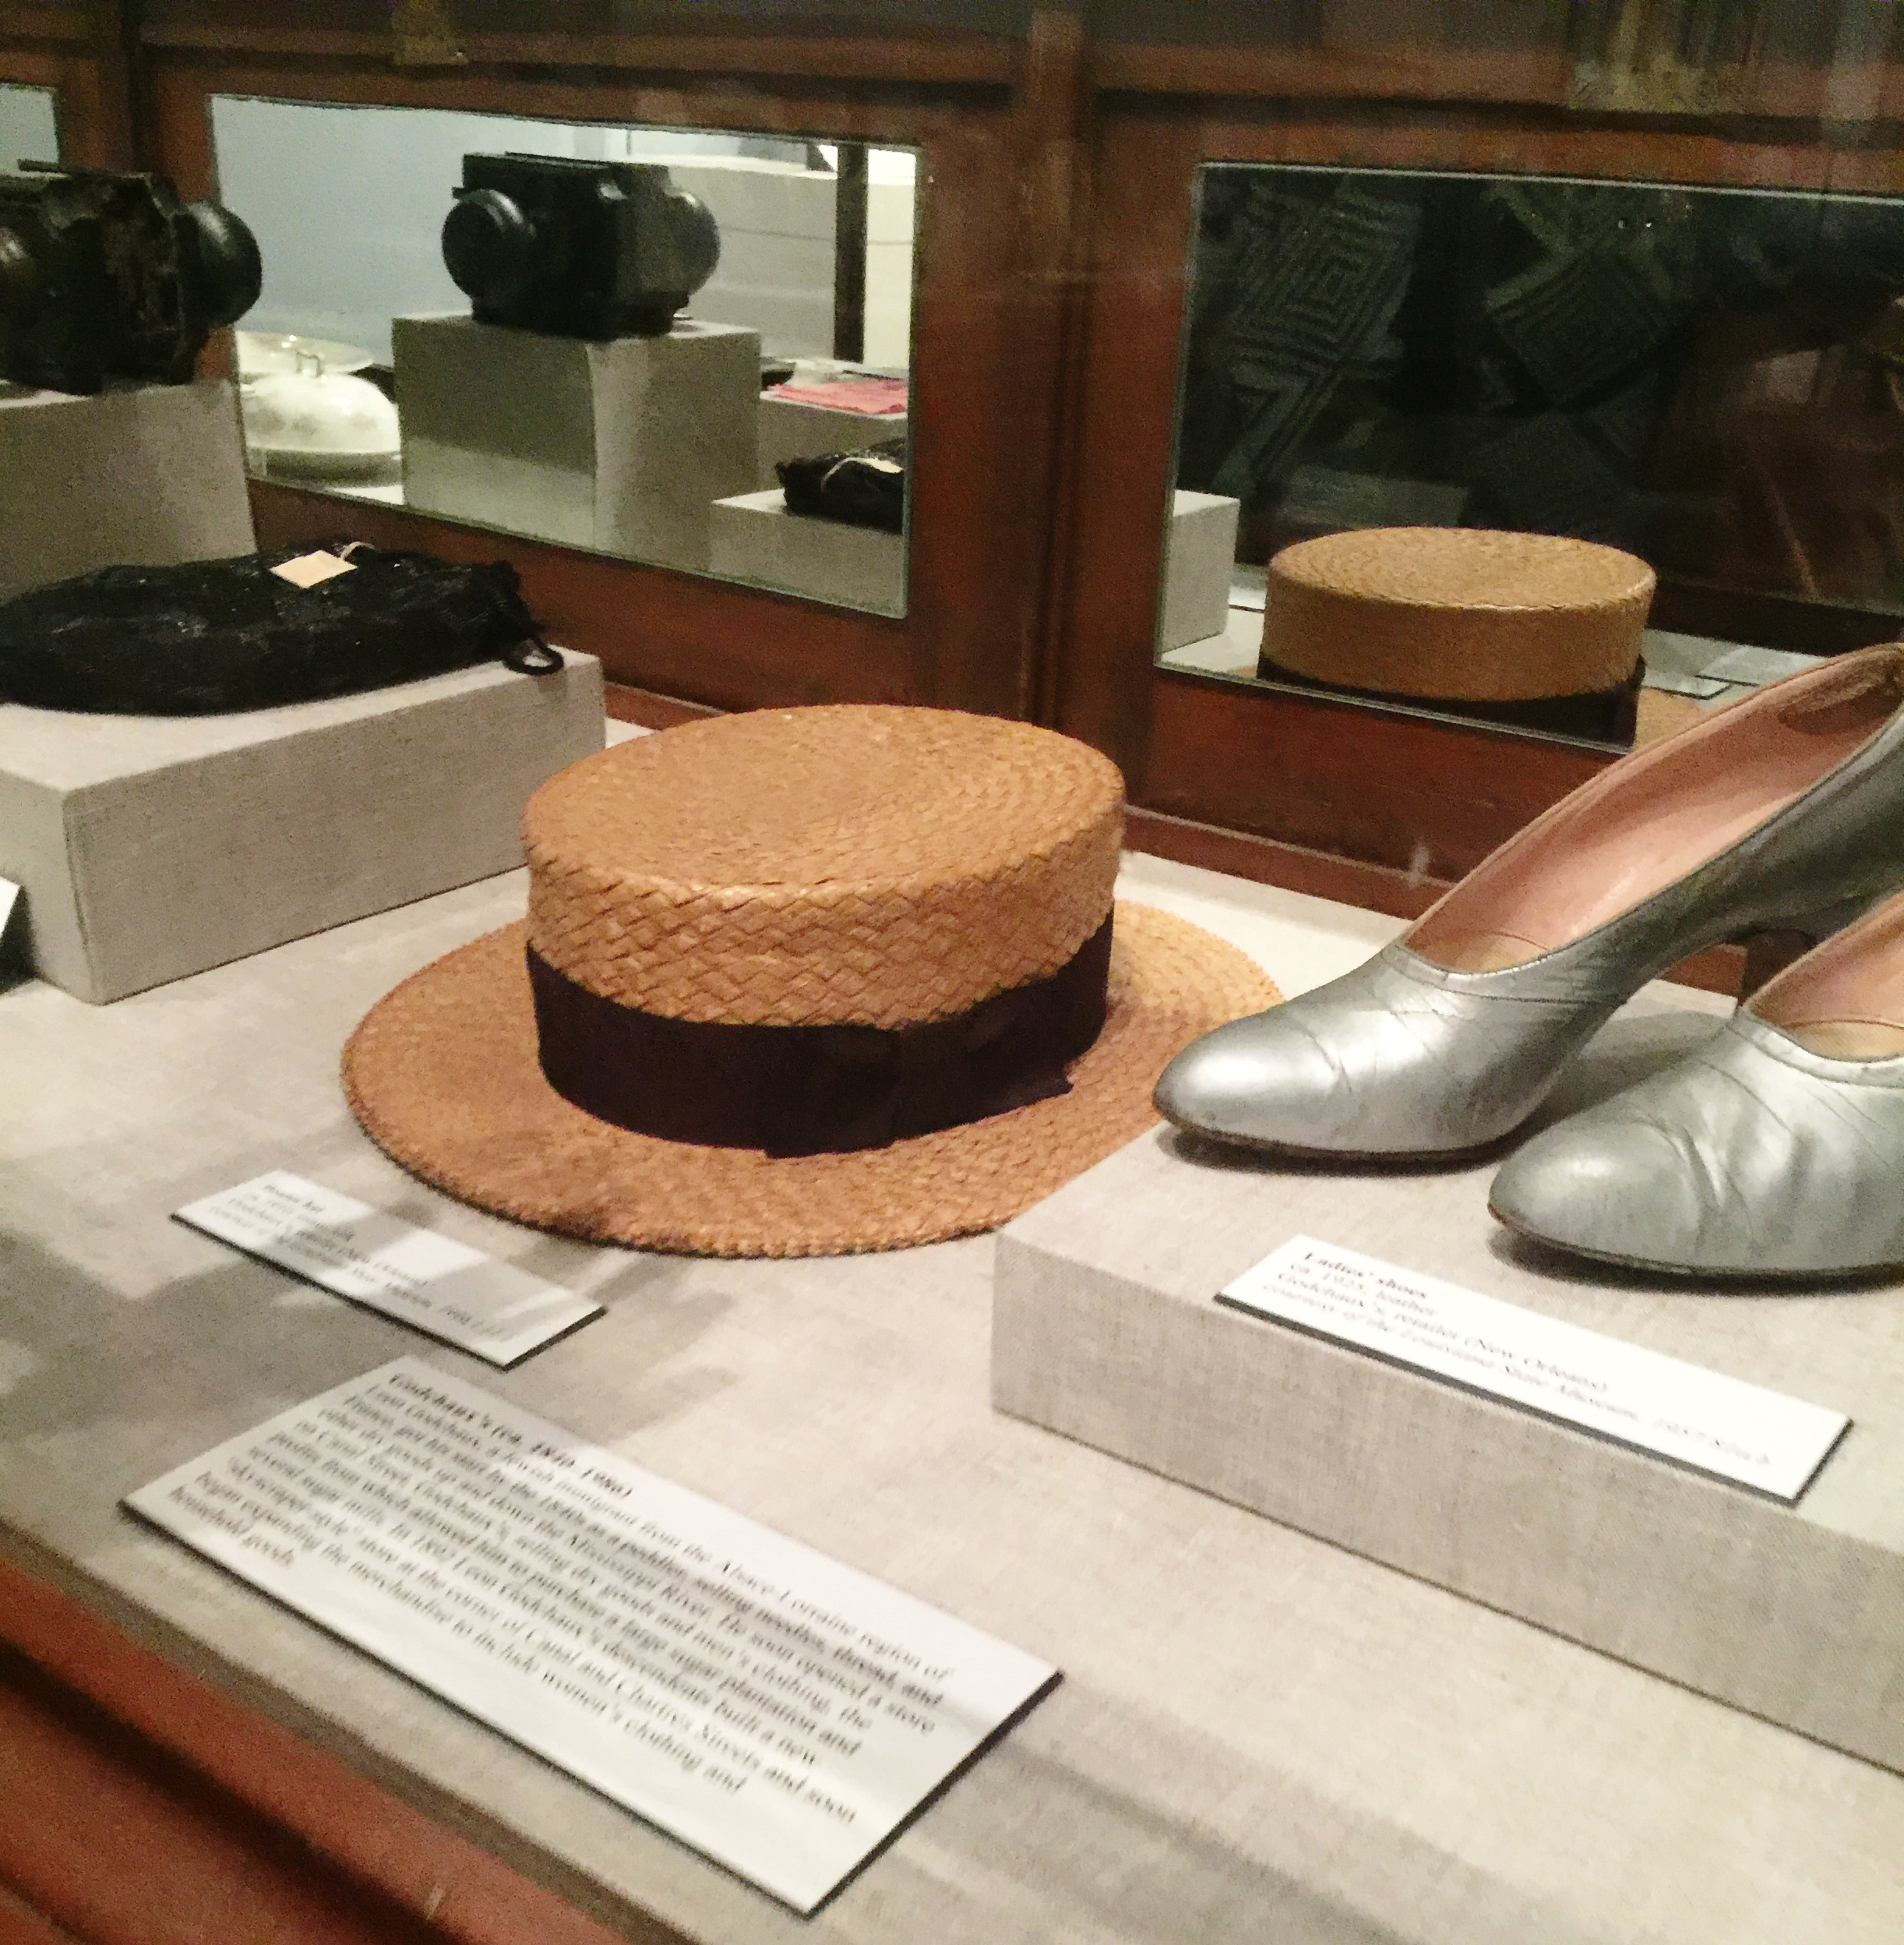 From the Shopping in New Orleans, 1825-1925 exhibit.